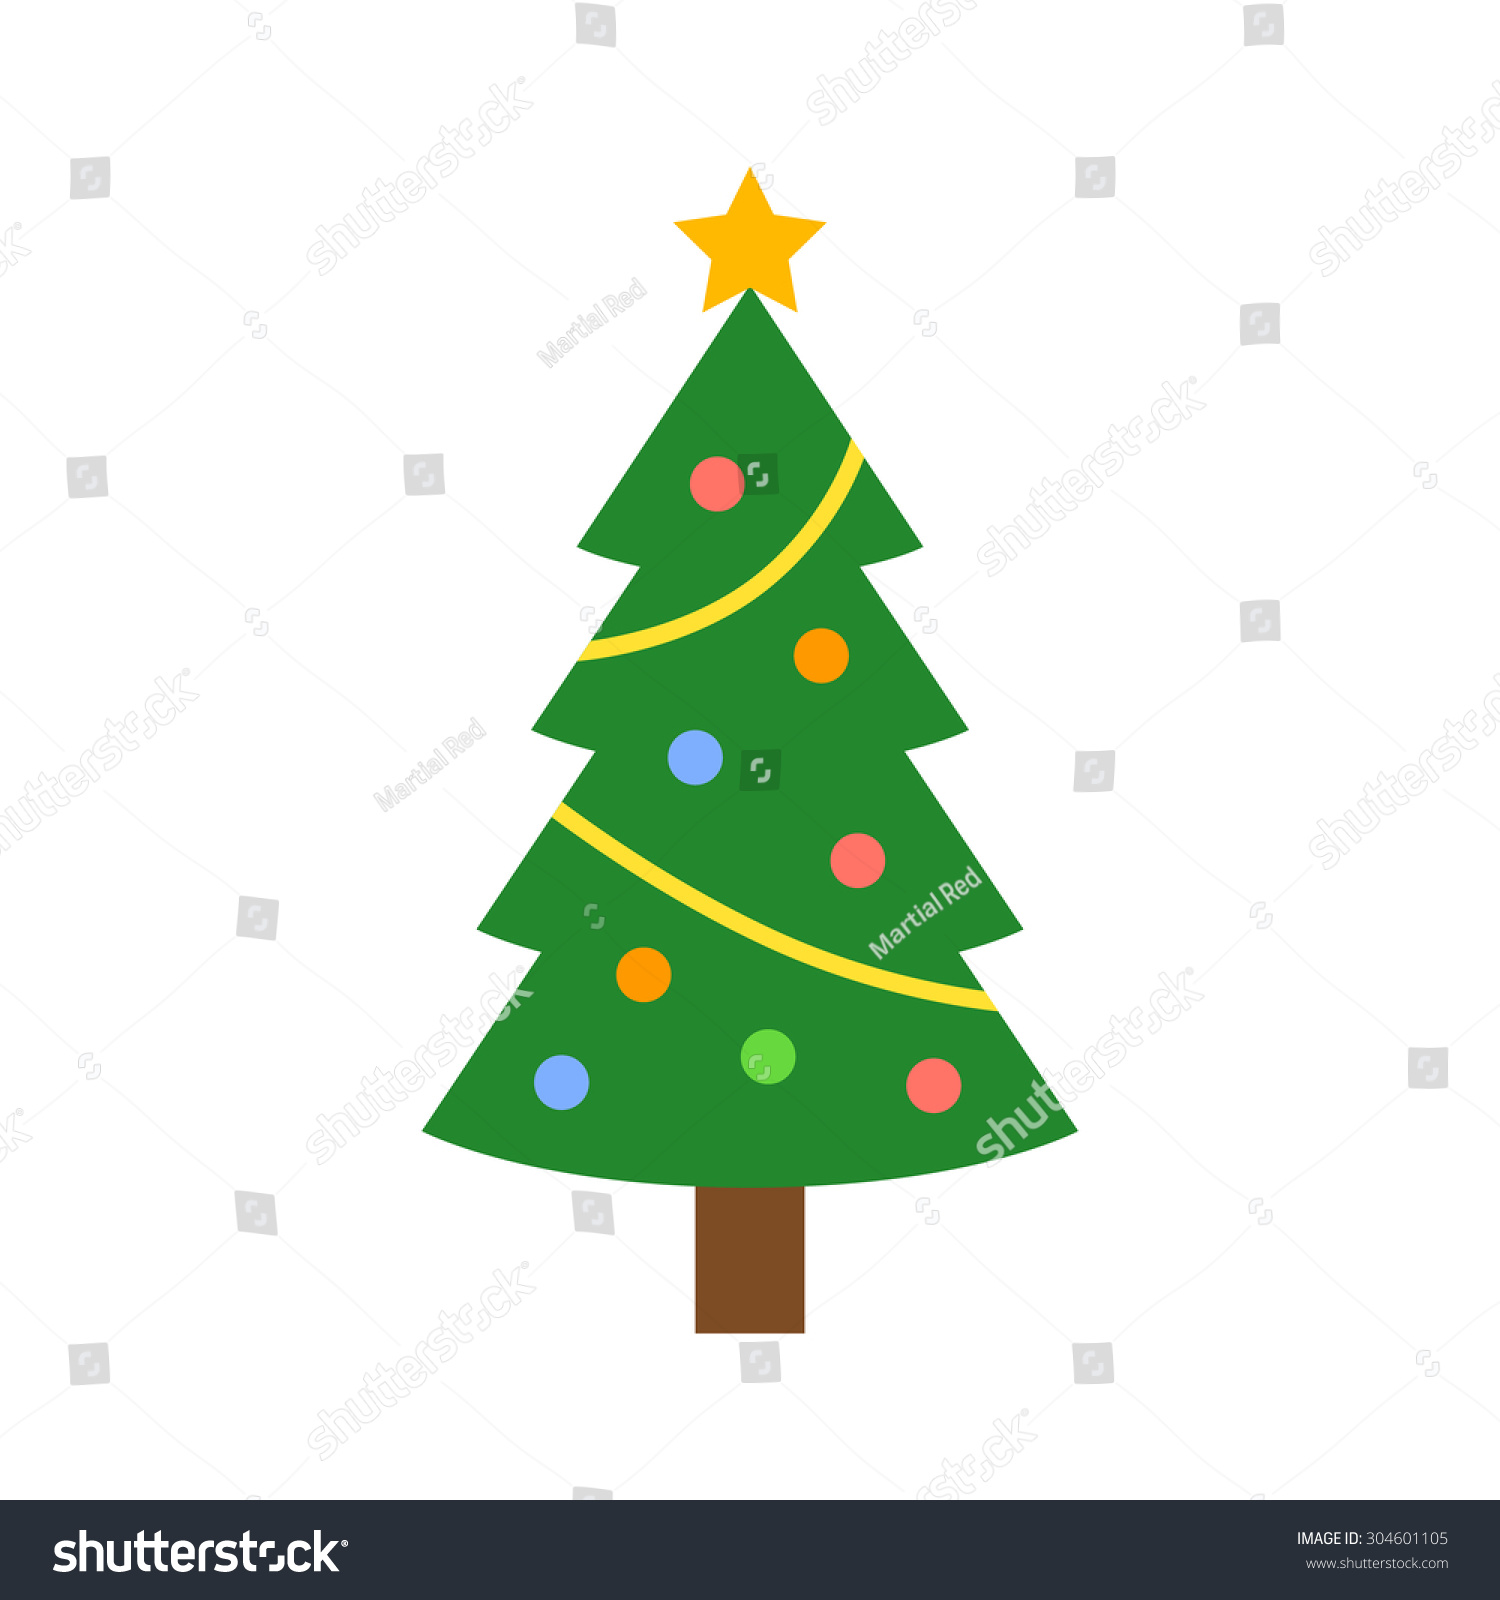 Christmas tree decorations star flat icon stock vector for Christmas decoration websites